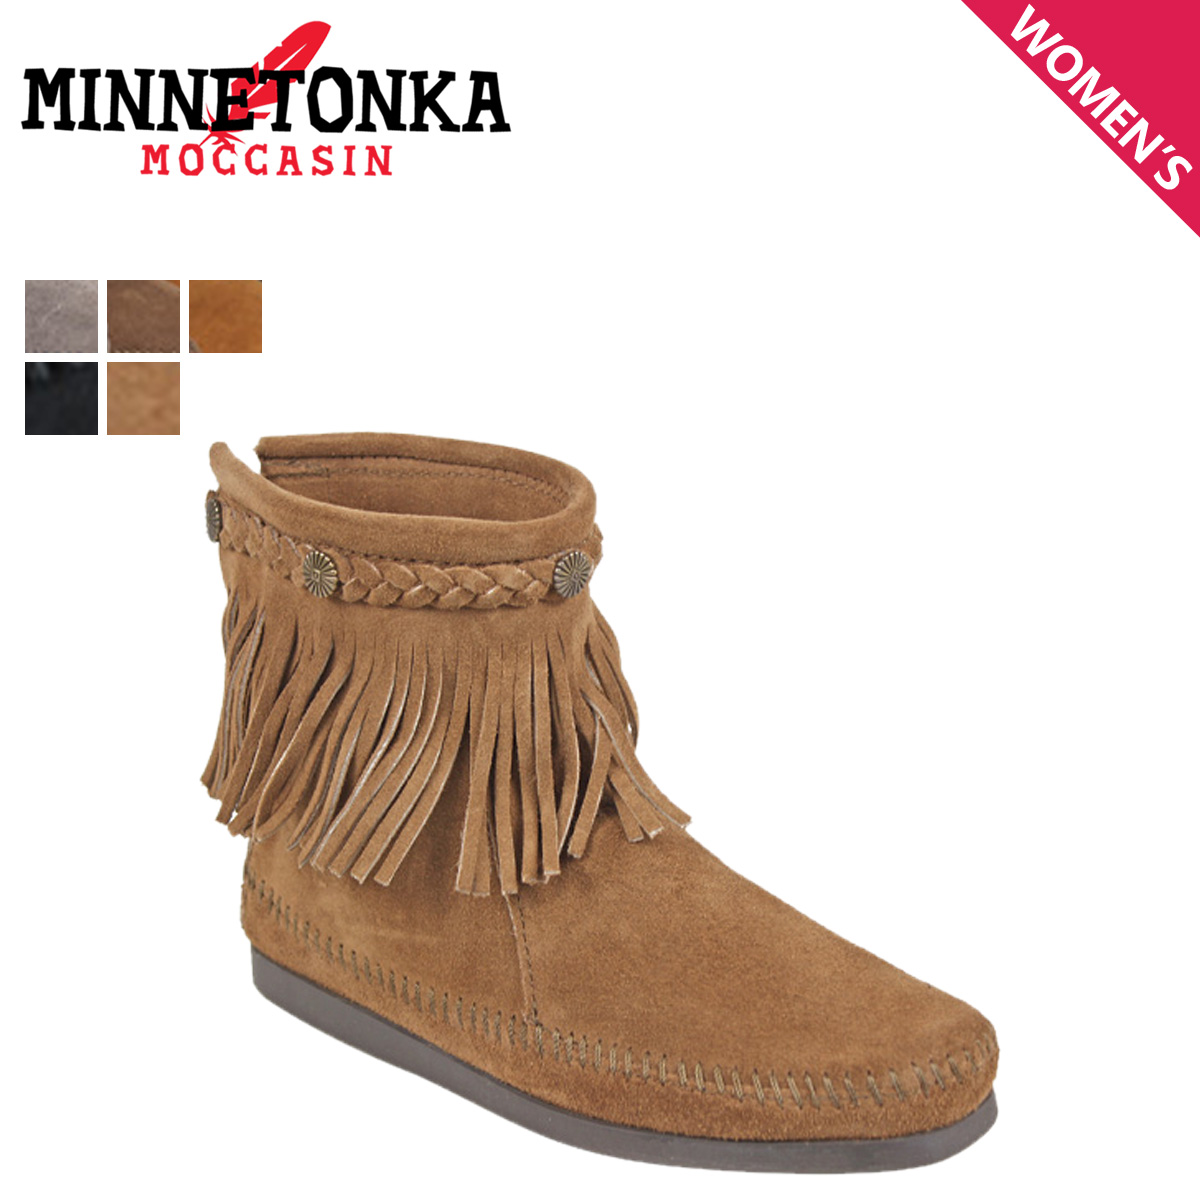 ed42b1a91788 «Reservation products» «10   29 days stock» Minnetonka MINNETONKA Hi top  back zip boot HI TOP BACK ZIP BOOTS suede ladies suede. «